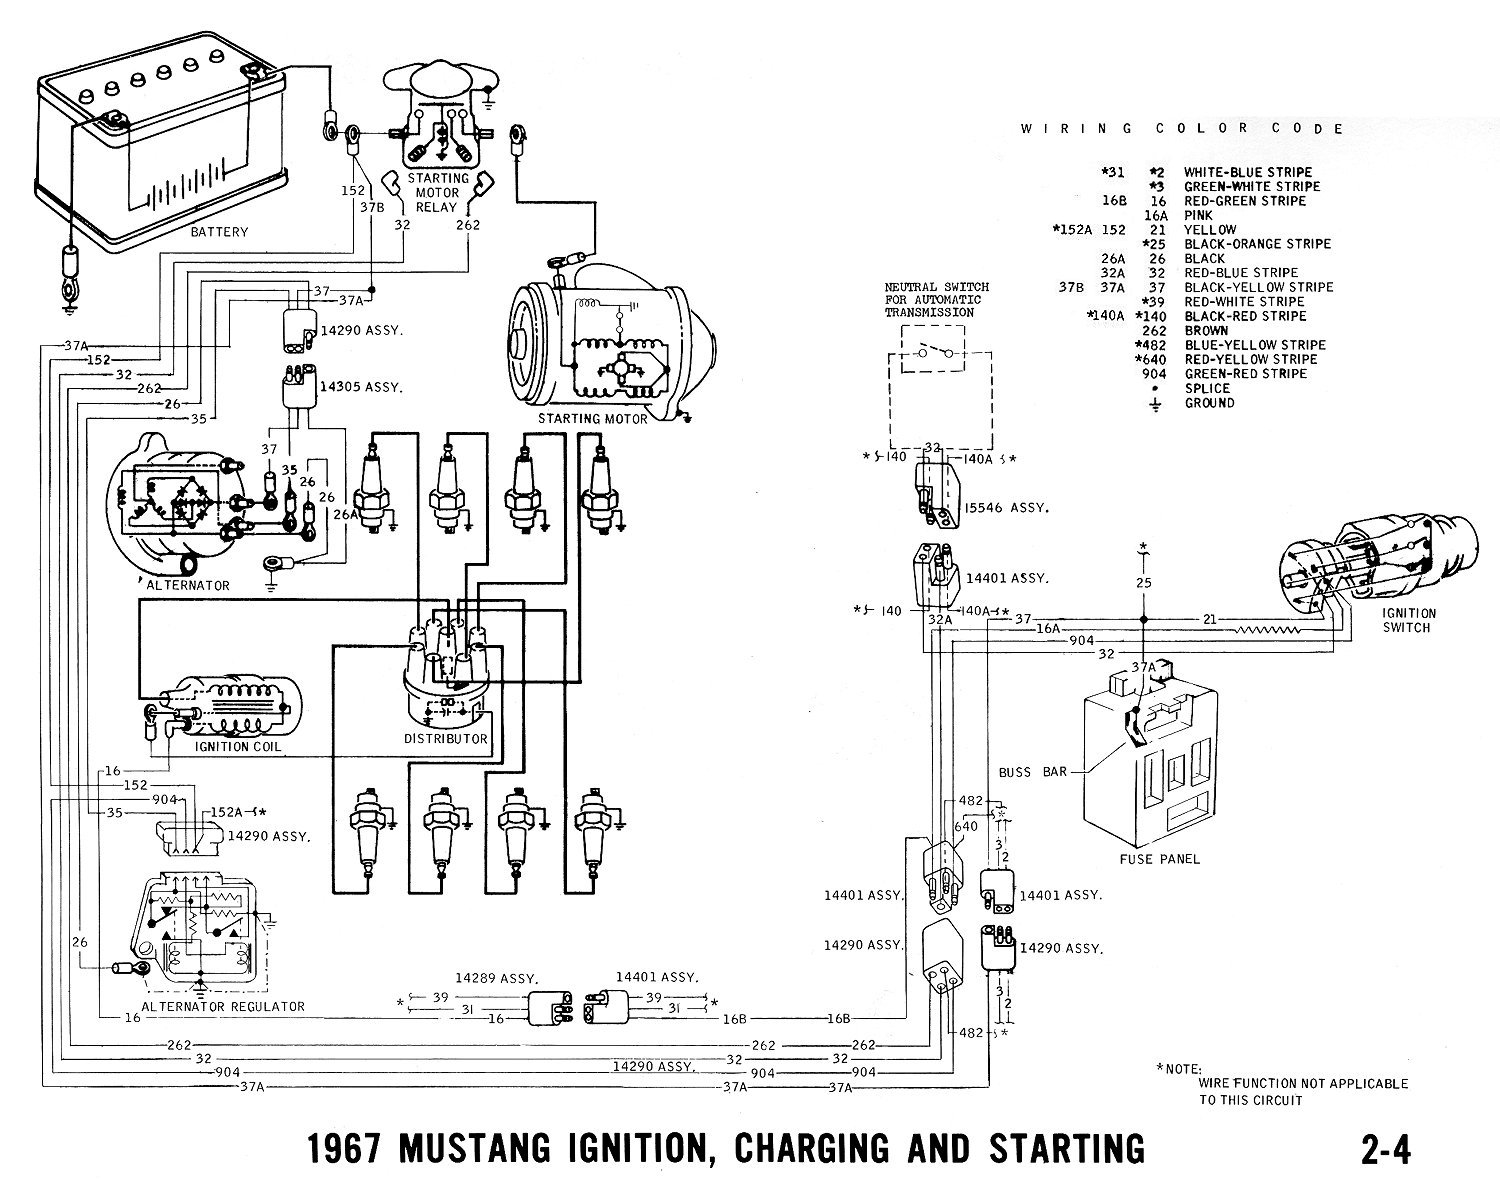 76 mustang ignition wiring diagram